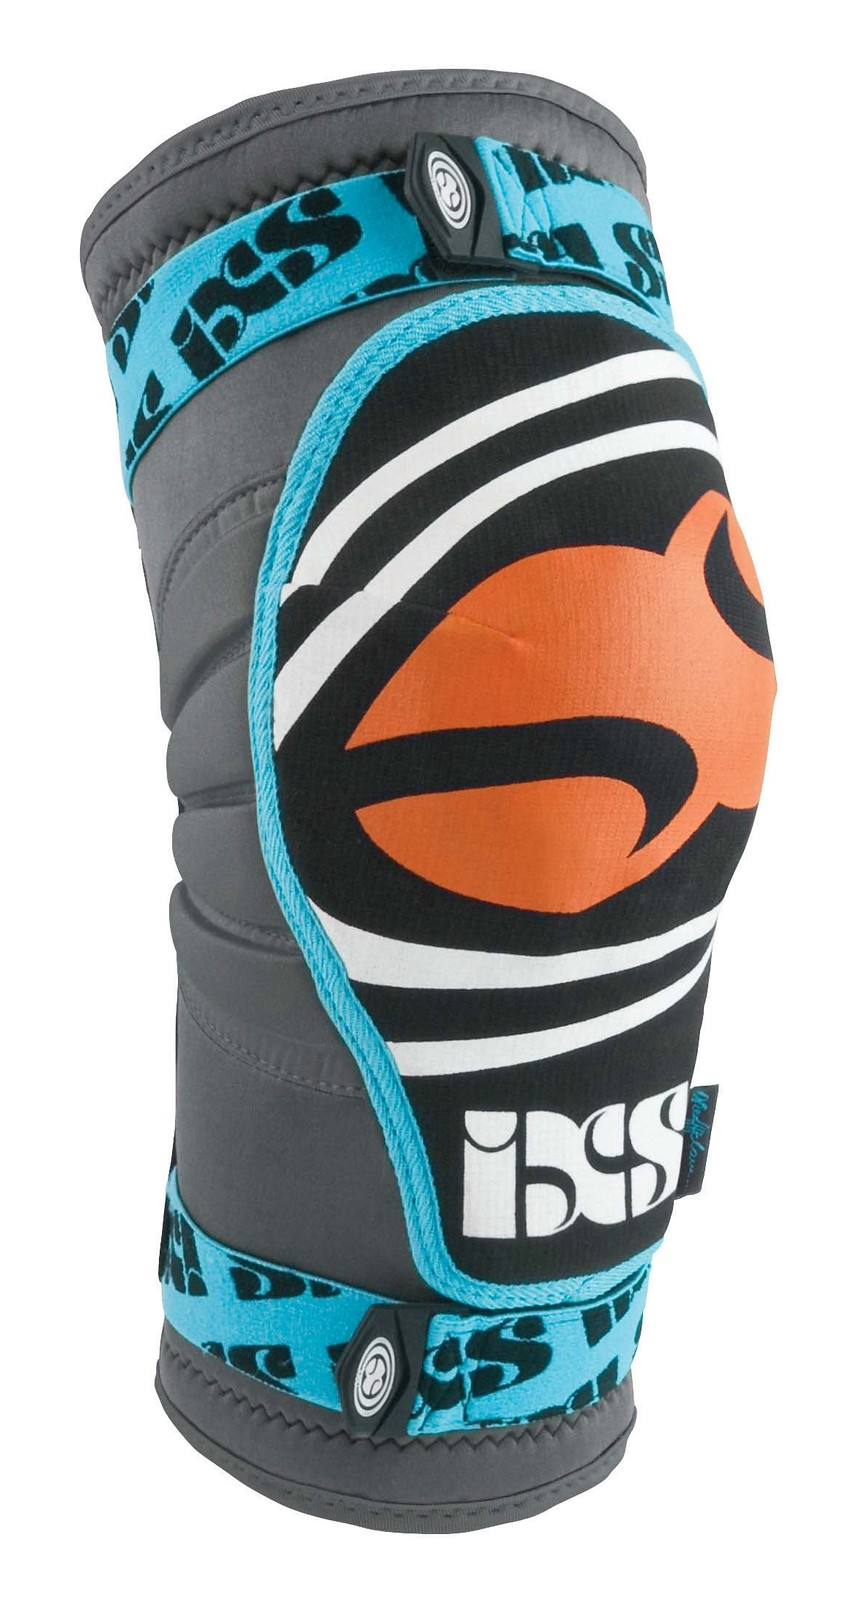 iXS Slope-Series EVO D'Claw Signature Knee Pad SLOPE-EVO-DCLAW-BLUE-front